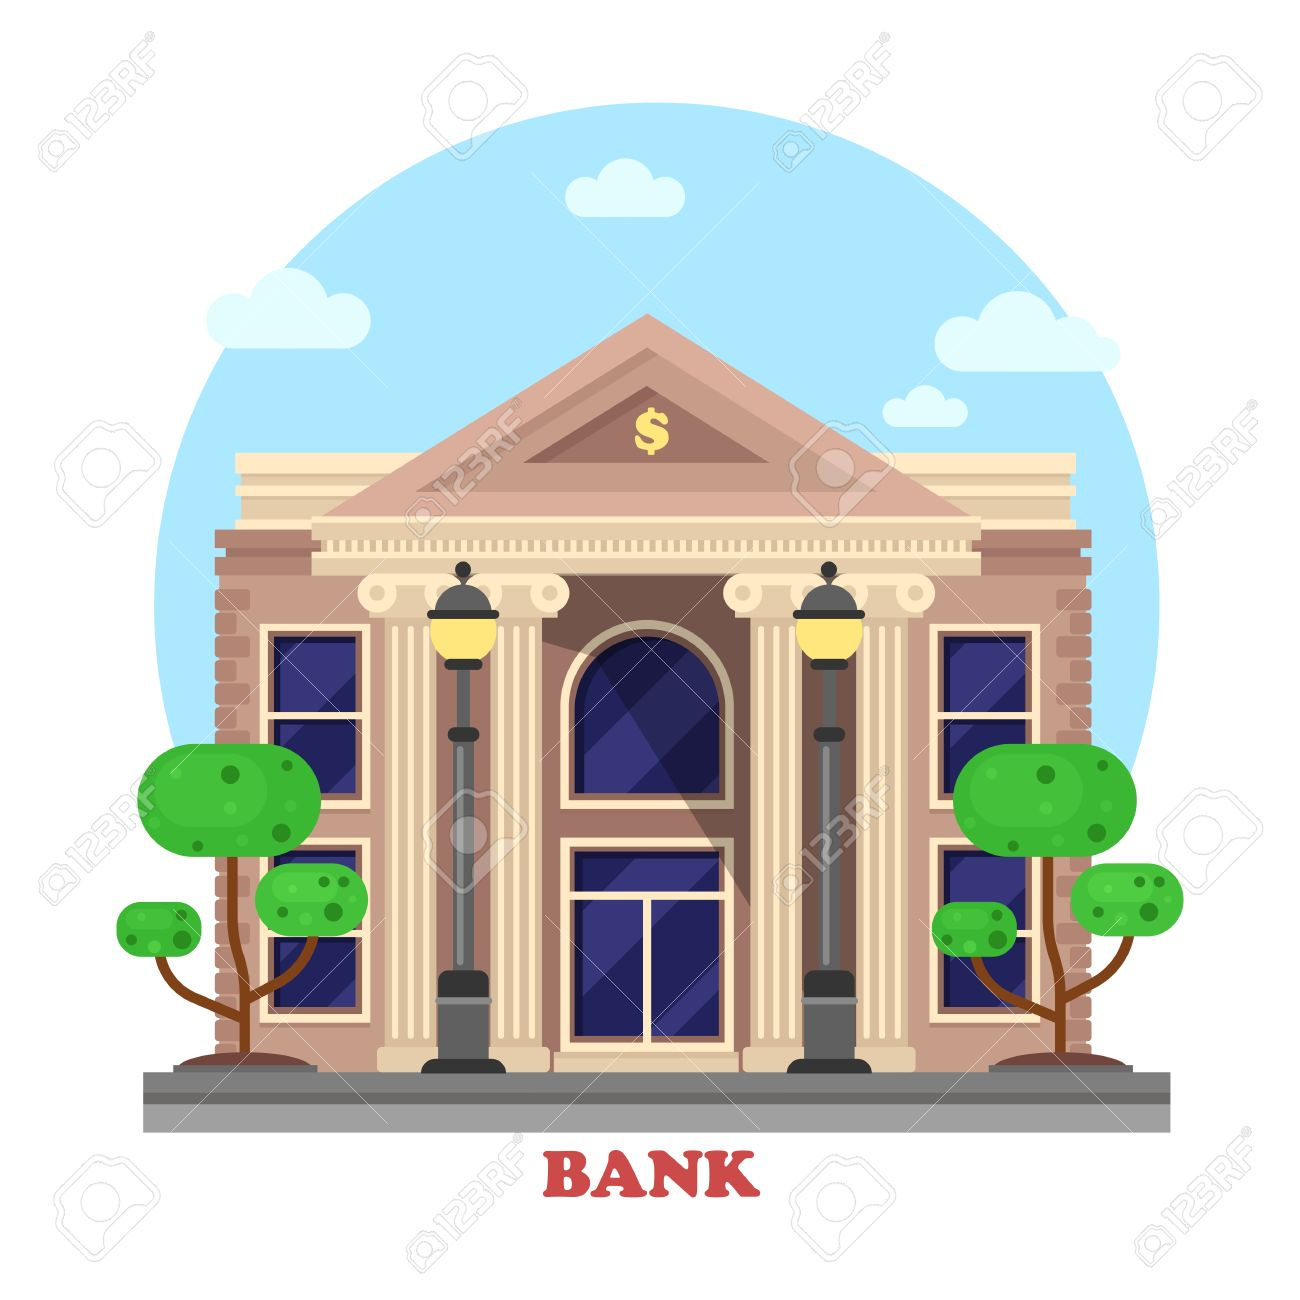 Bank Clipart – Browse this featured selection from the web for use in websites, blogs, social media and your other products.